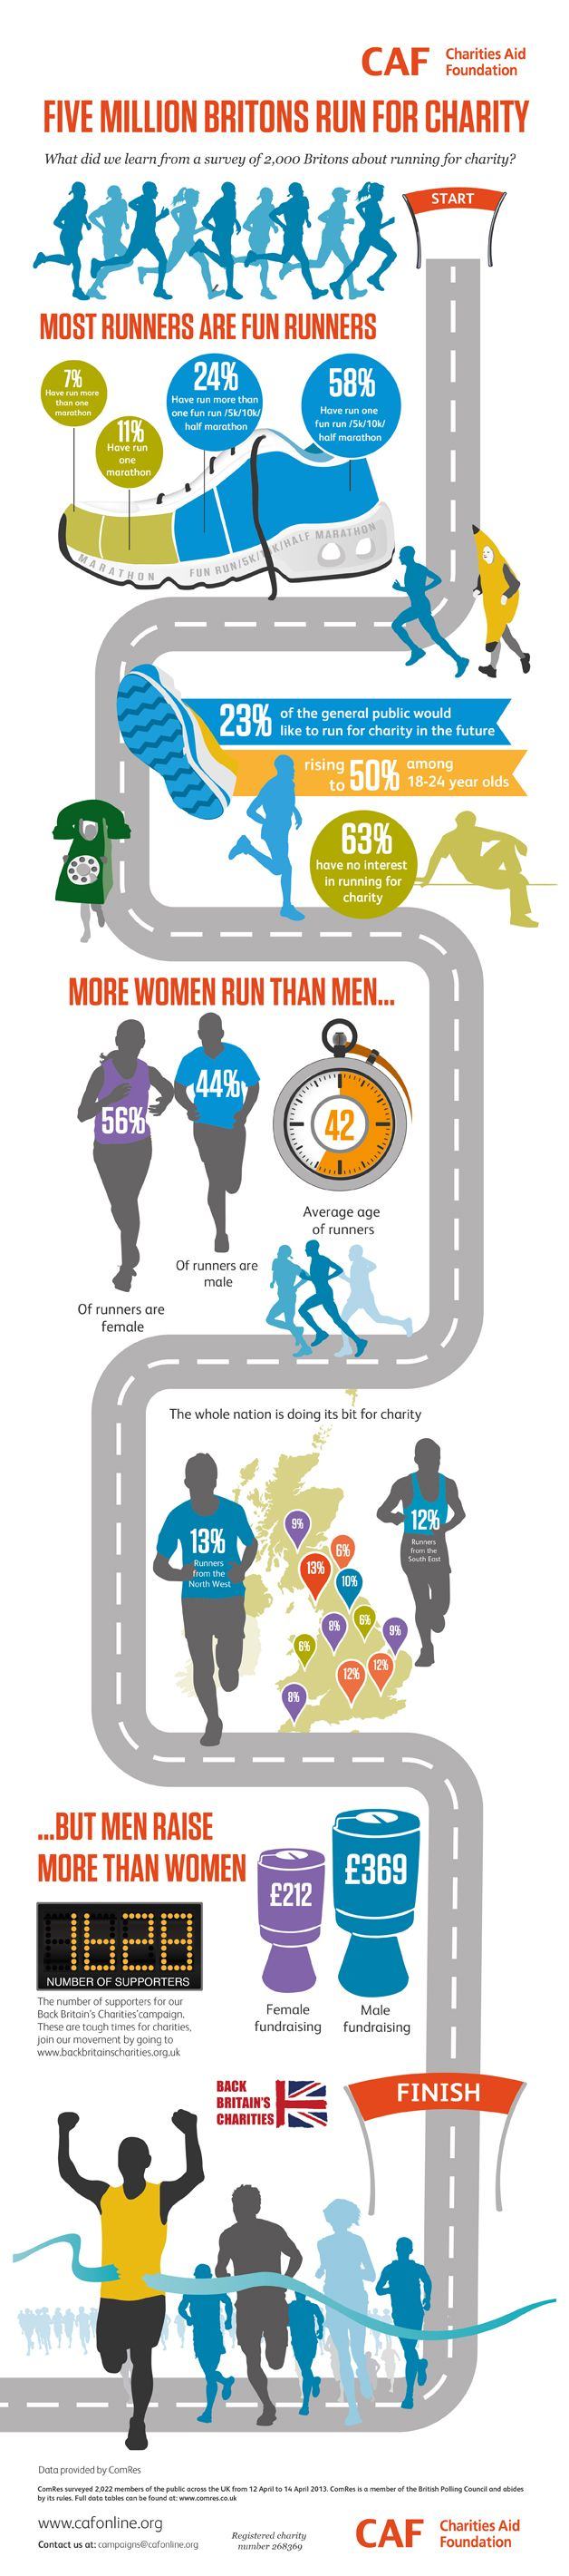 Britain is a nation of fun runners! Charities Aid Foundation surveyed 2,000 Britons who run for charity (12-14 April 2013). A timely infographic to appear just before the 2013 Virgin London Marathon on 21 April. #londonmarathon